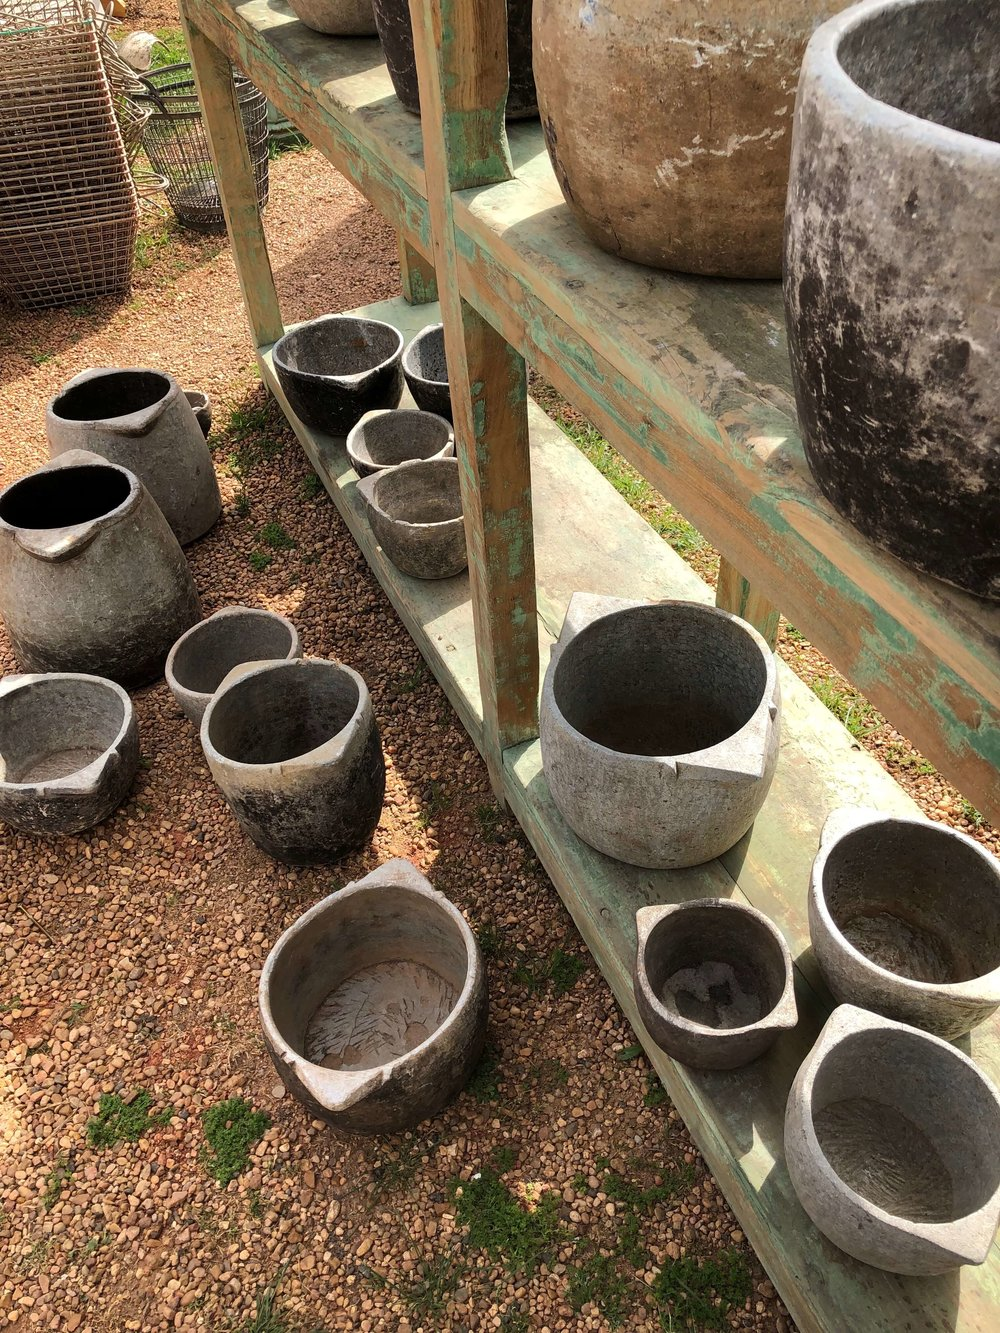 Soapstone containers | Northgate in Warrenton, Round Top Antiques Fair